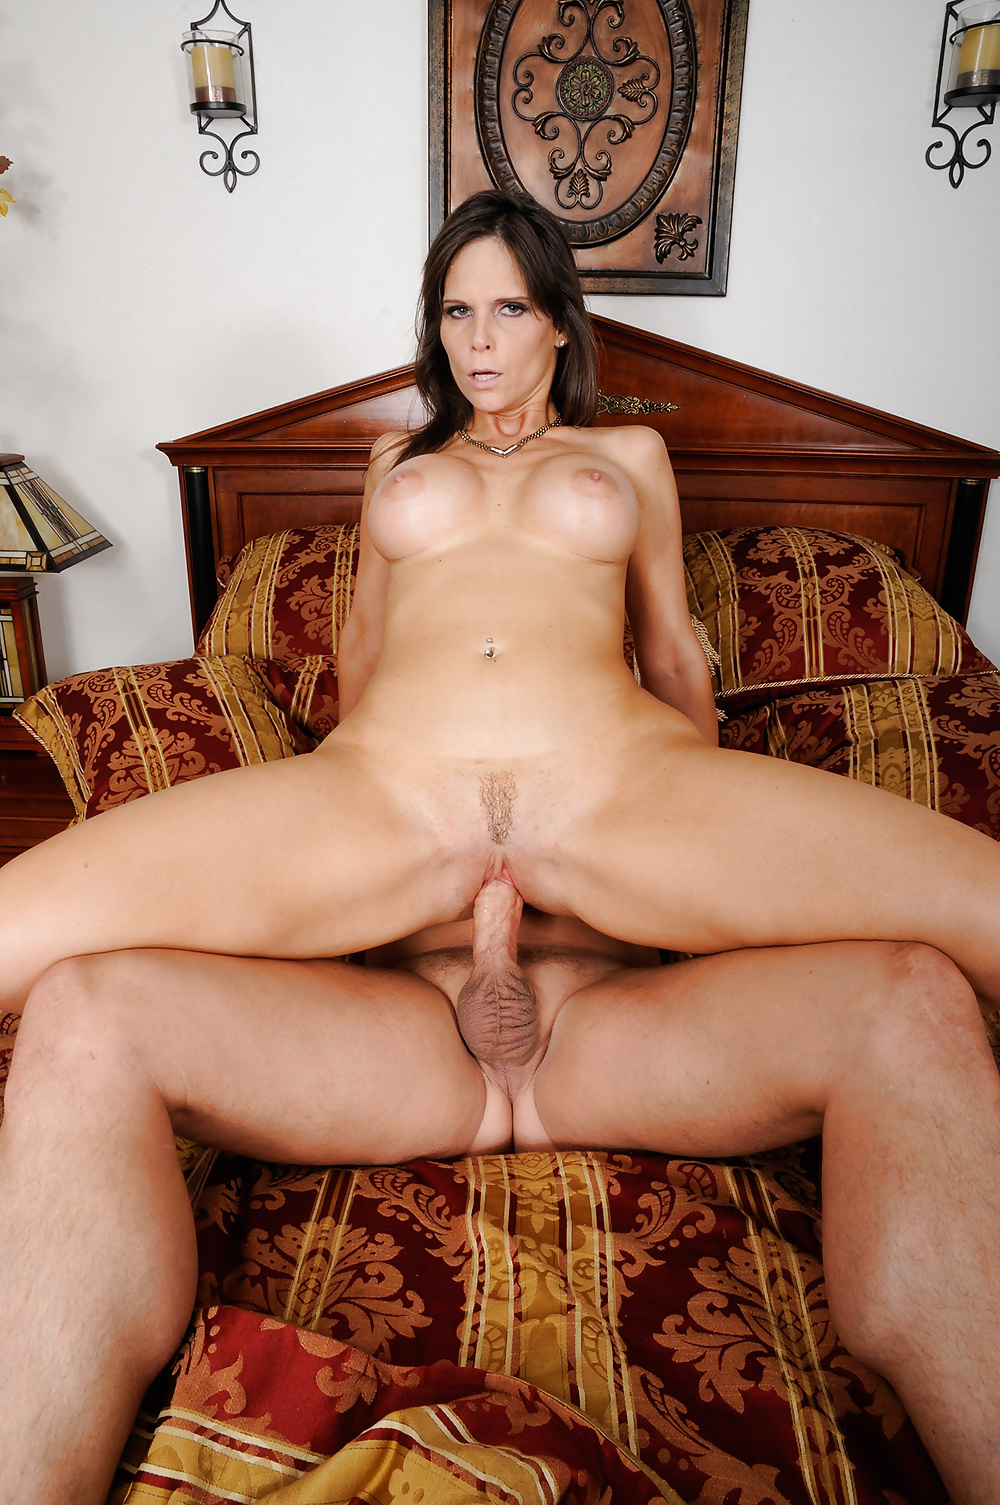 Mature women suck regular size dicks